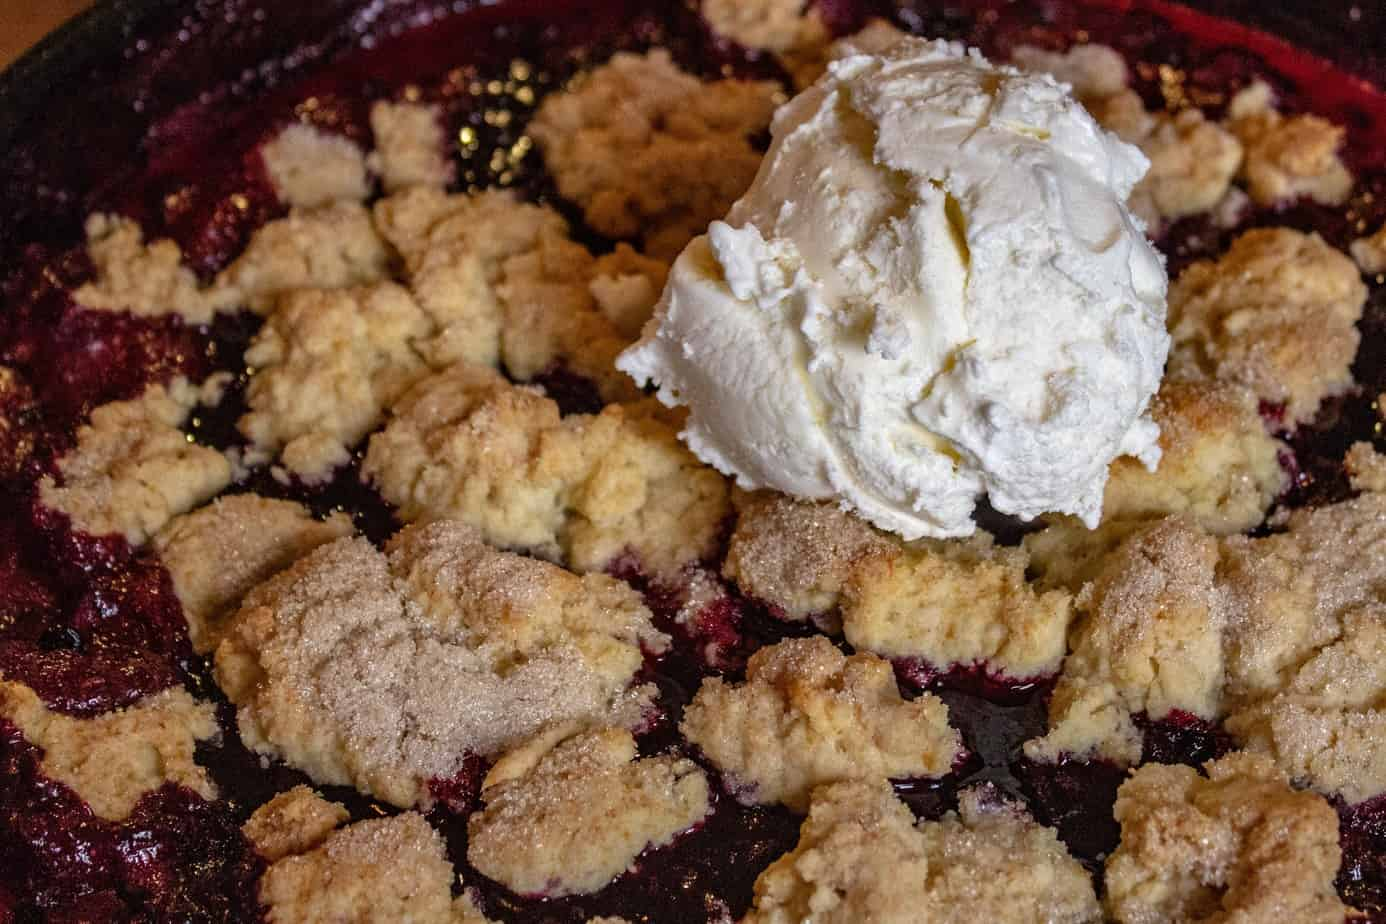 Smoked Huckleberry Cobbler Recipe with Ice Cream